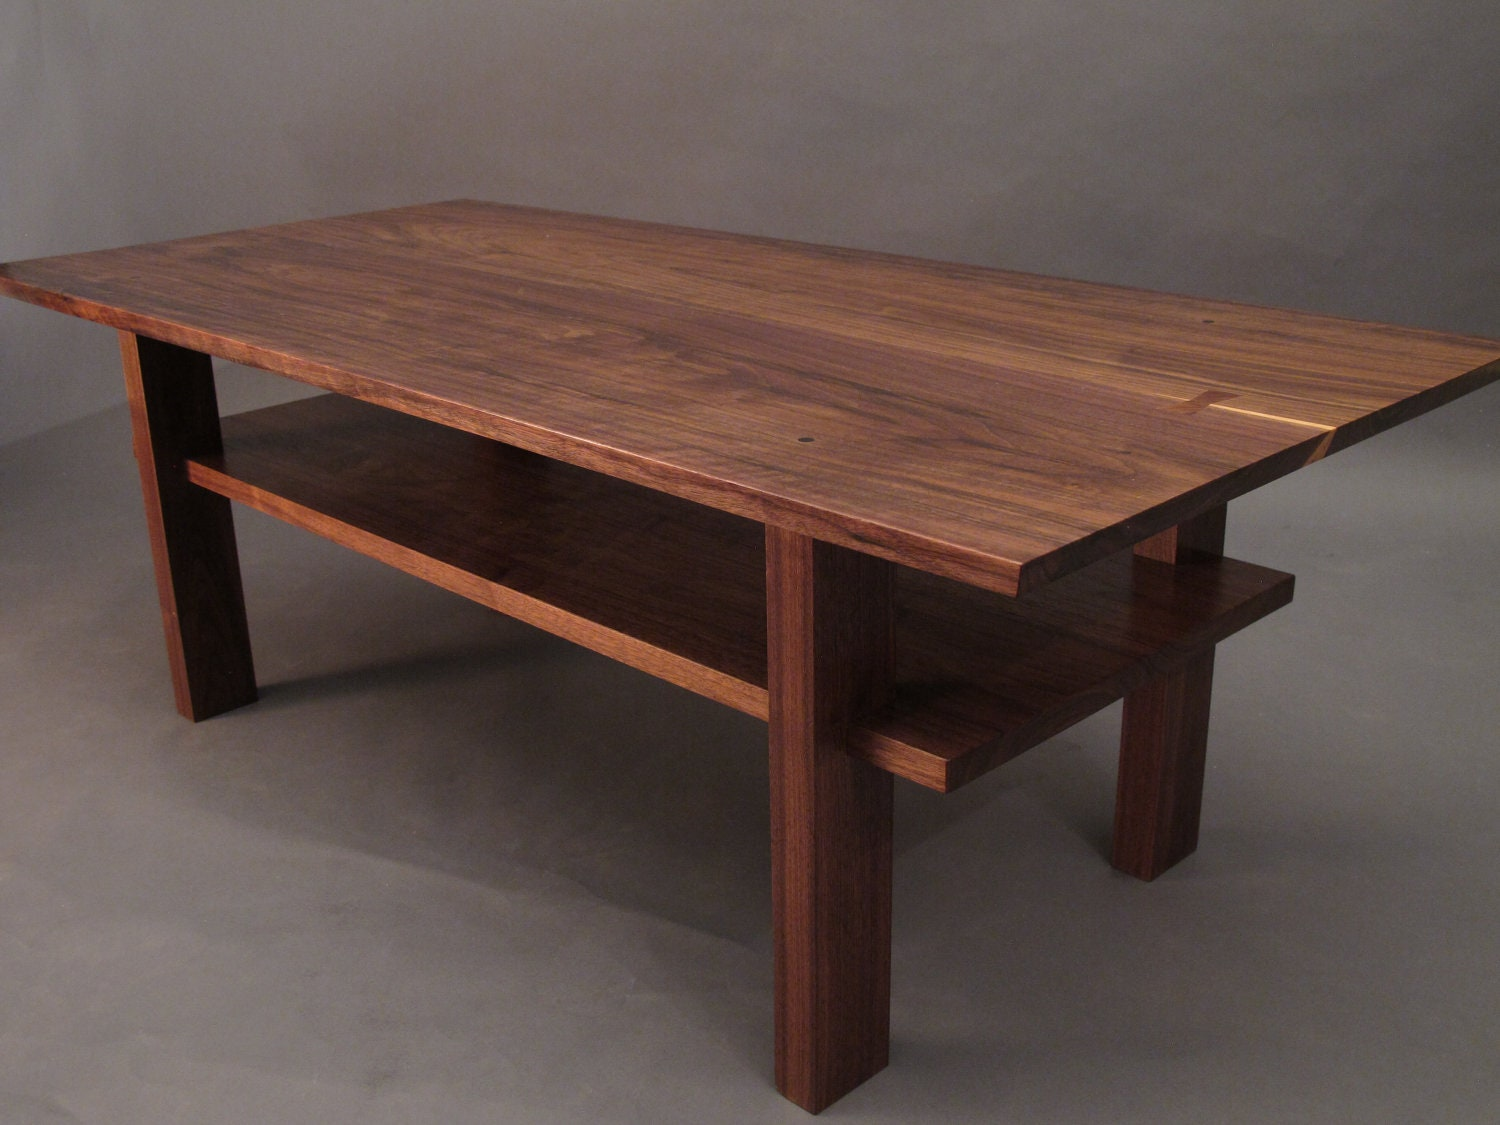 Walnut coffee table small wood tables for living room narrow for Small designer tables